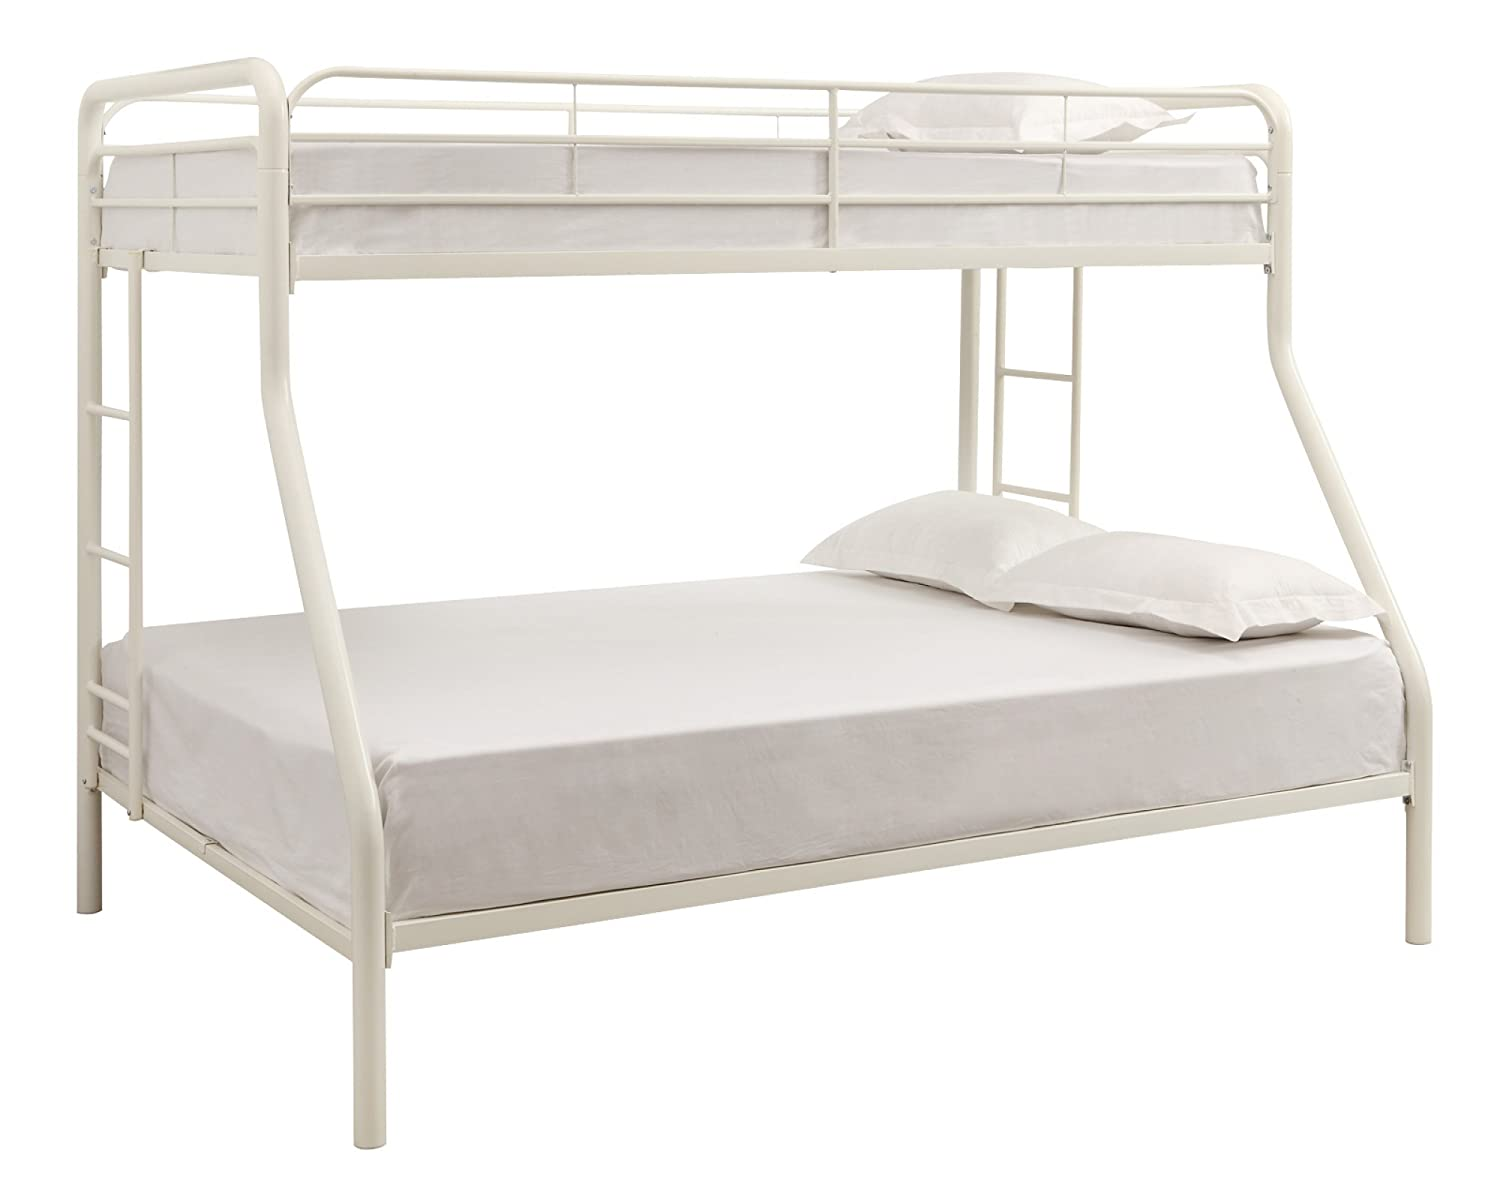 Amazon com  DHP Twin Over Full Bunk Bed with Metal Frame and Ladder   Space Saving Design  White  Kitchen   Dining. Amazon com  DHP Twin Over Full Bunk Bed with Metal Frame and